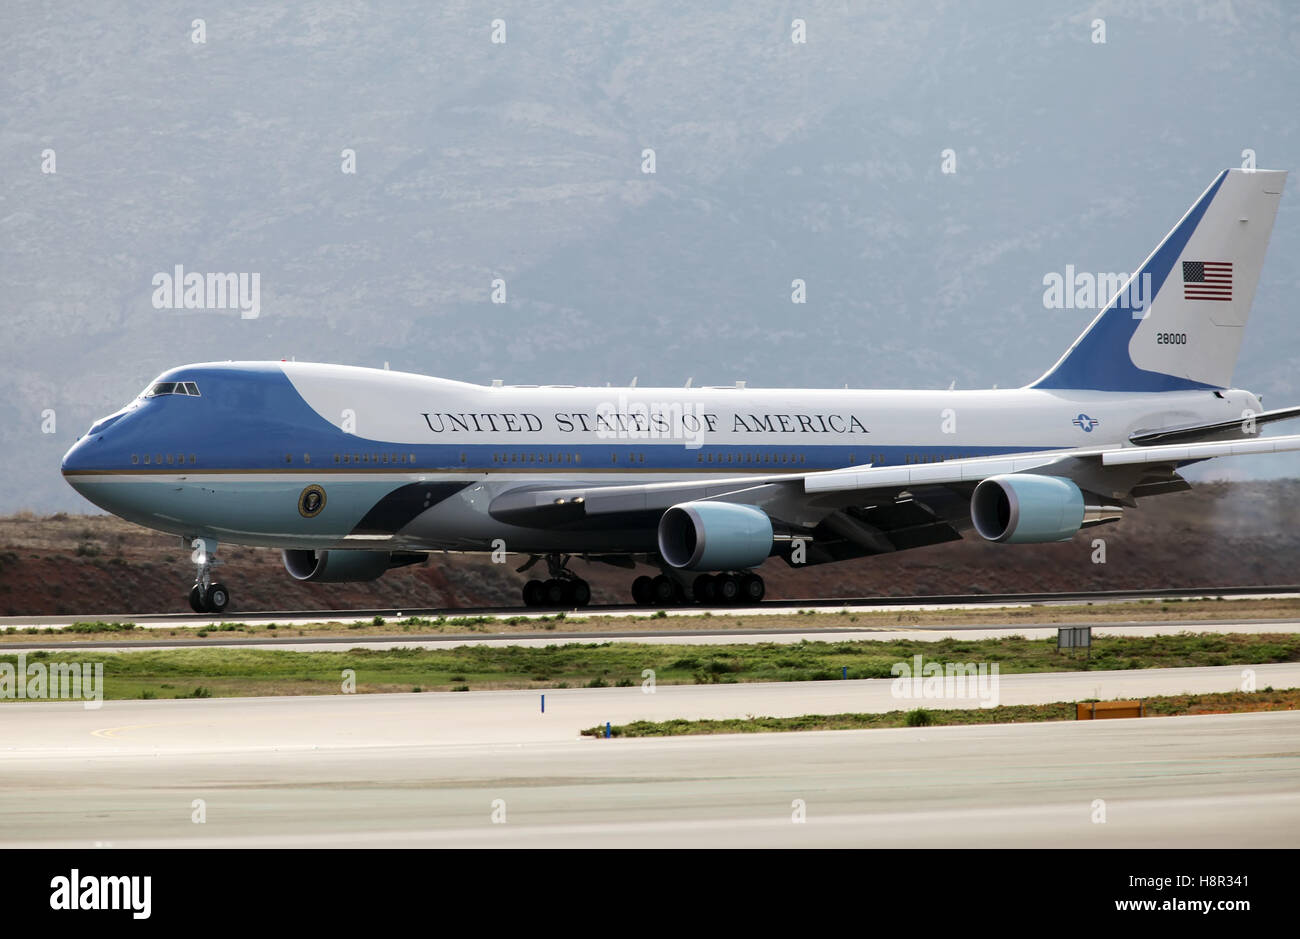 Athens, Greece,15th November 2016. The Air Force One lands at the Athens International Airport Eleftherios Venizelos. - Stock Image